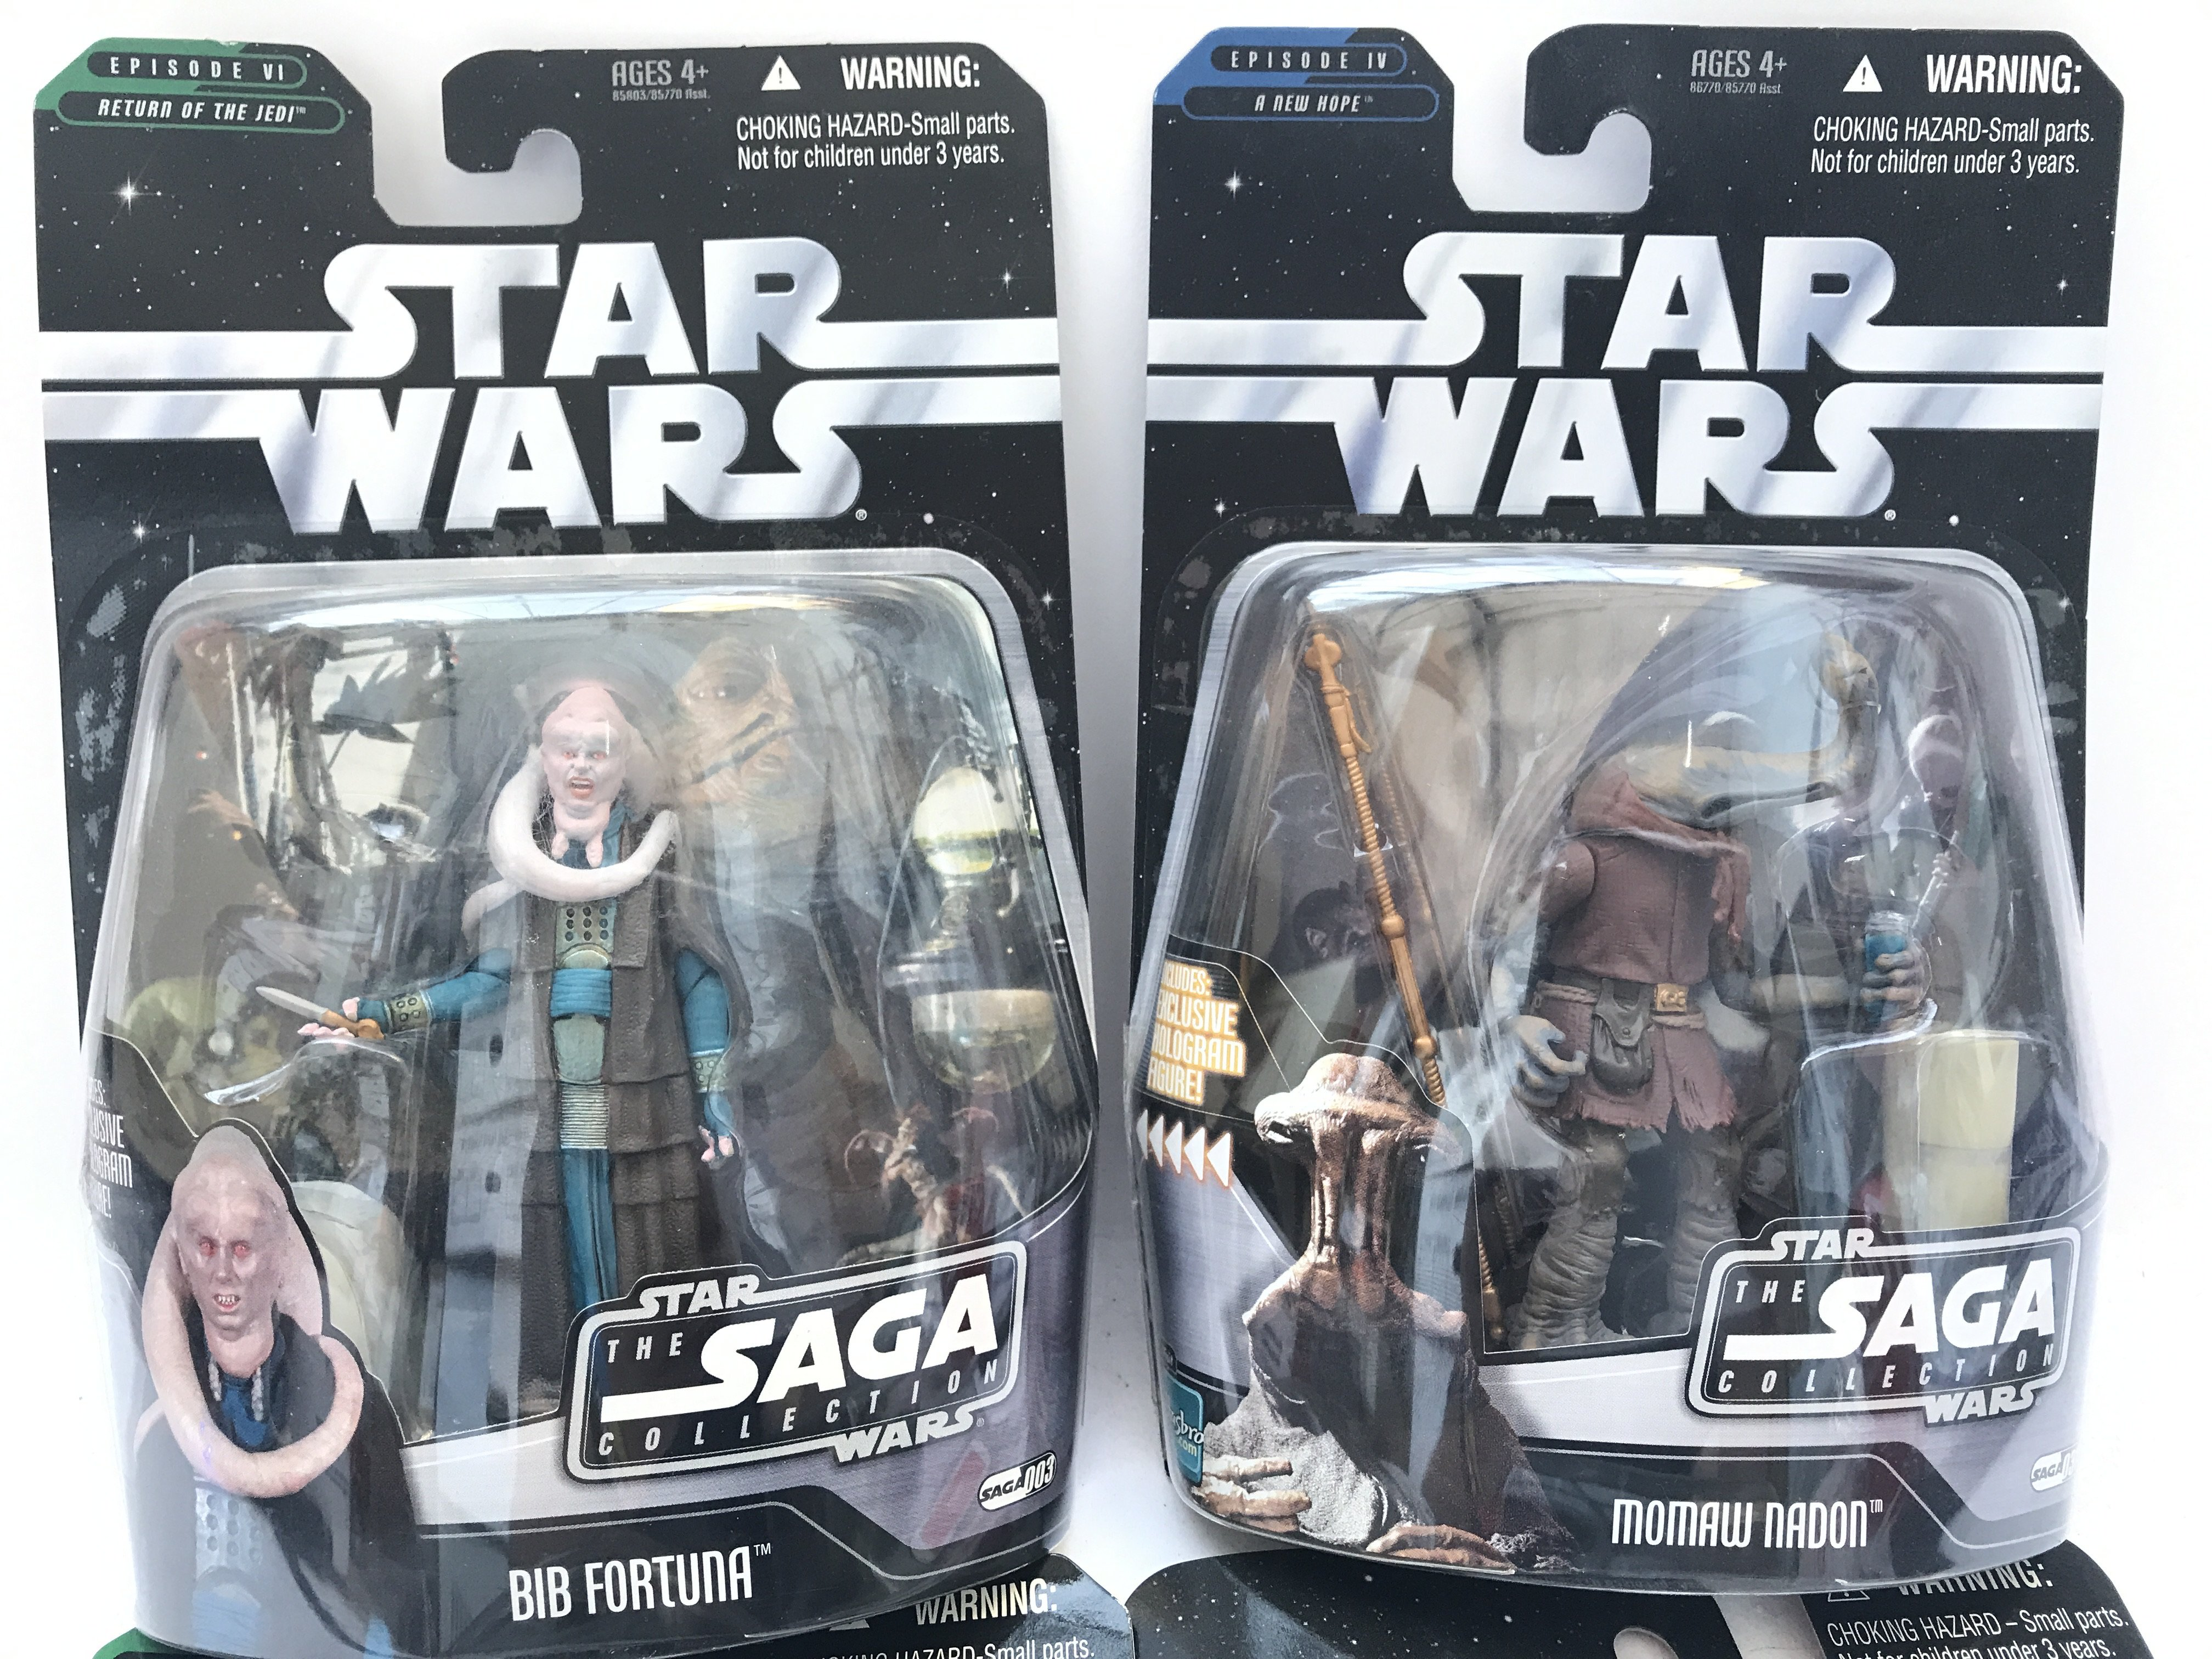 4 X Star Wars Carded Figures 3 from the Saga Colle - Image 2 of 3